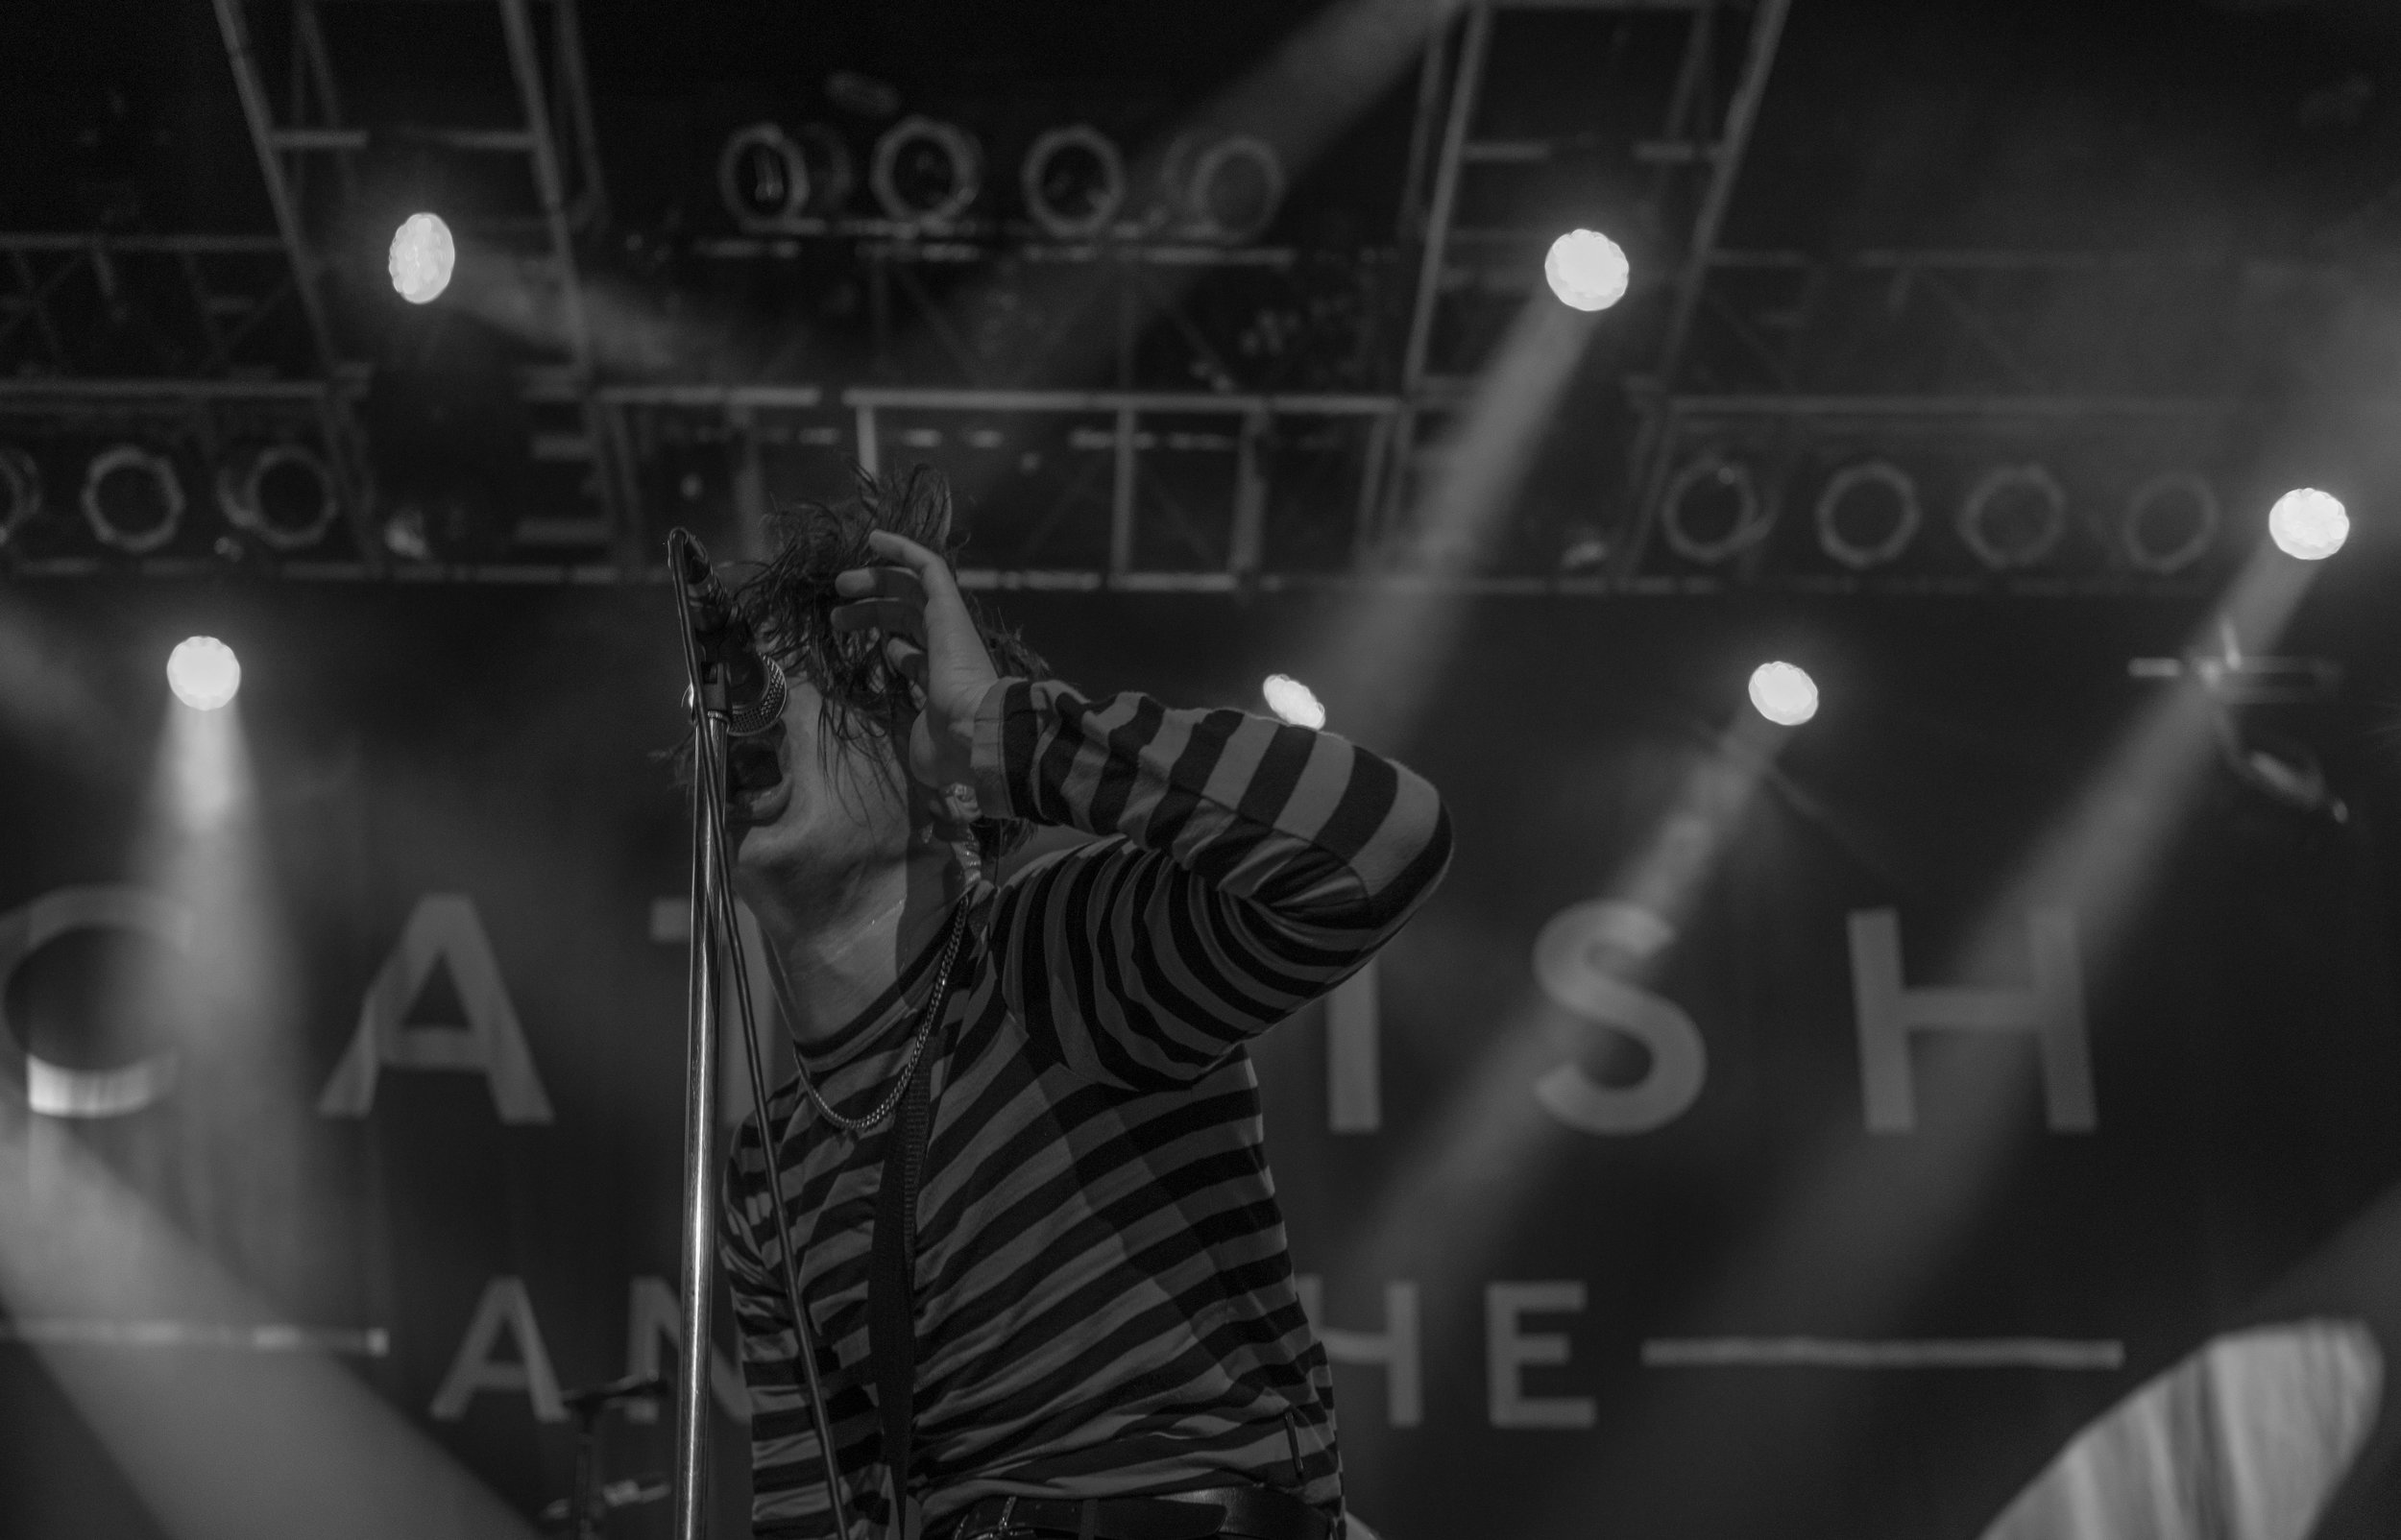 LOLLAPALOOZA AFTERSHOW: Yungblud at House of Blues in Chicago, Illinois